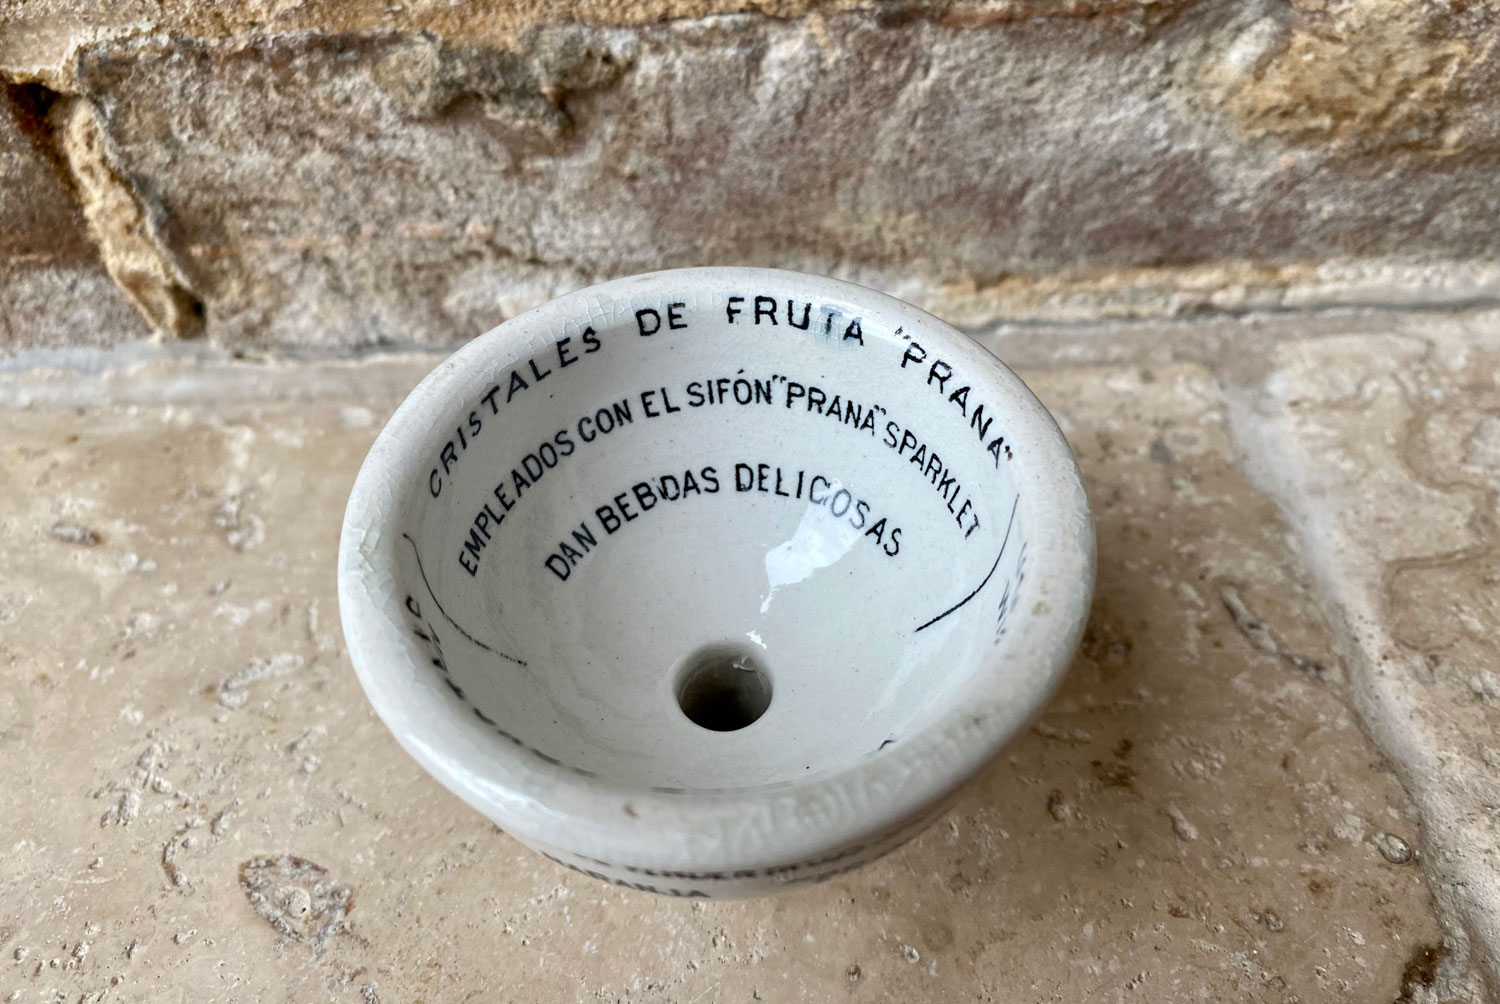 rare scarce prana fruit crystals measuring funnel double sided white ironstone advertising